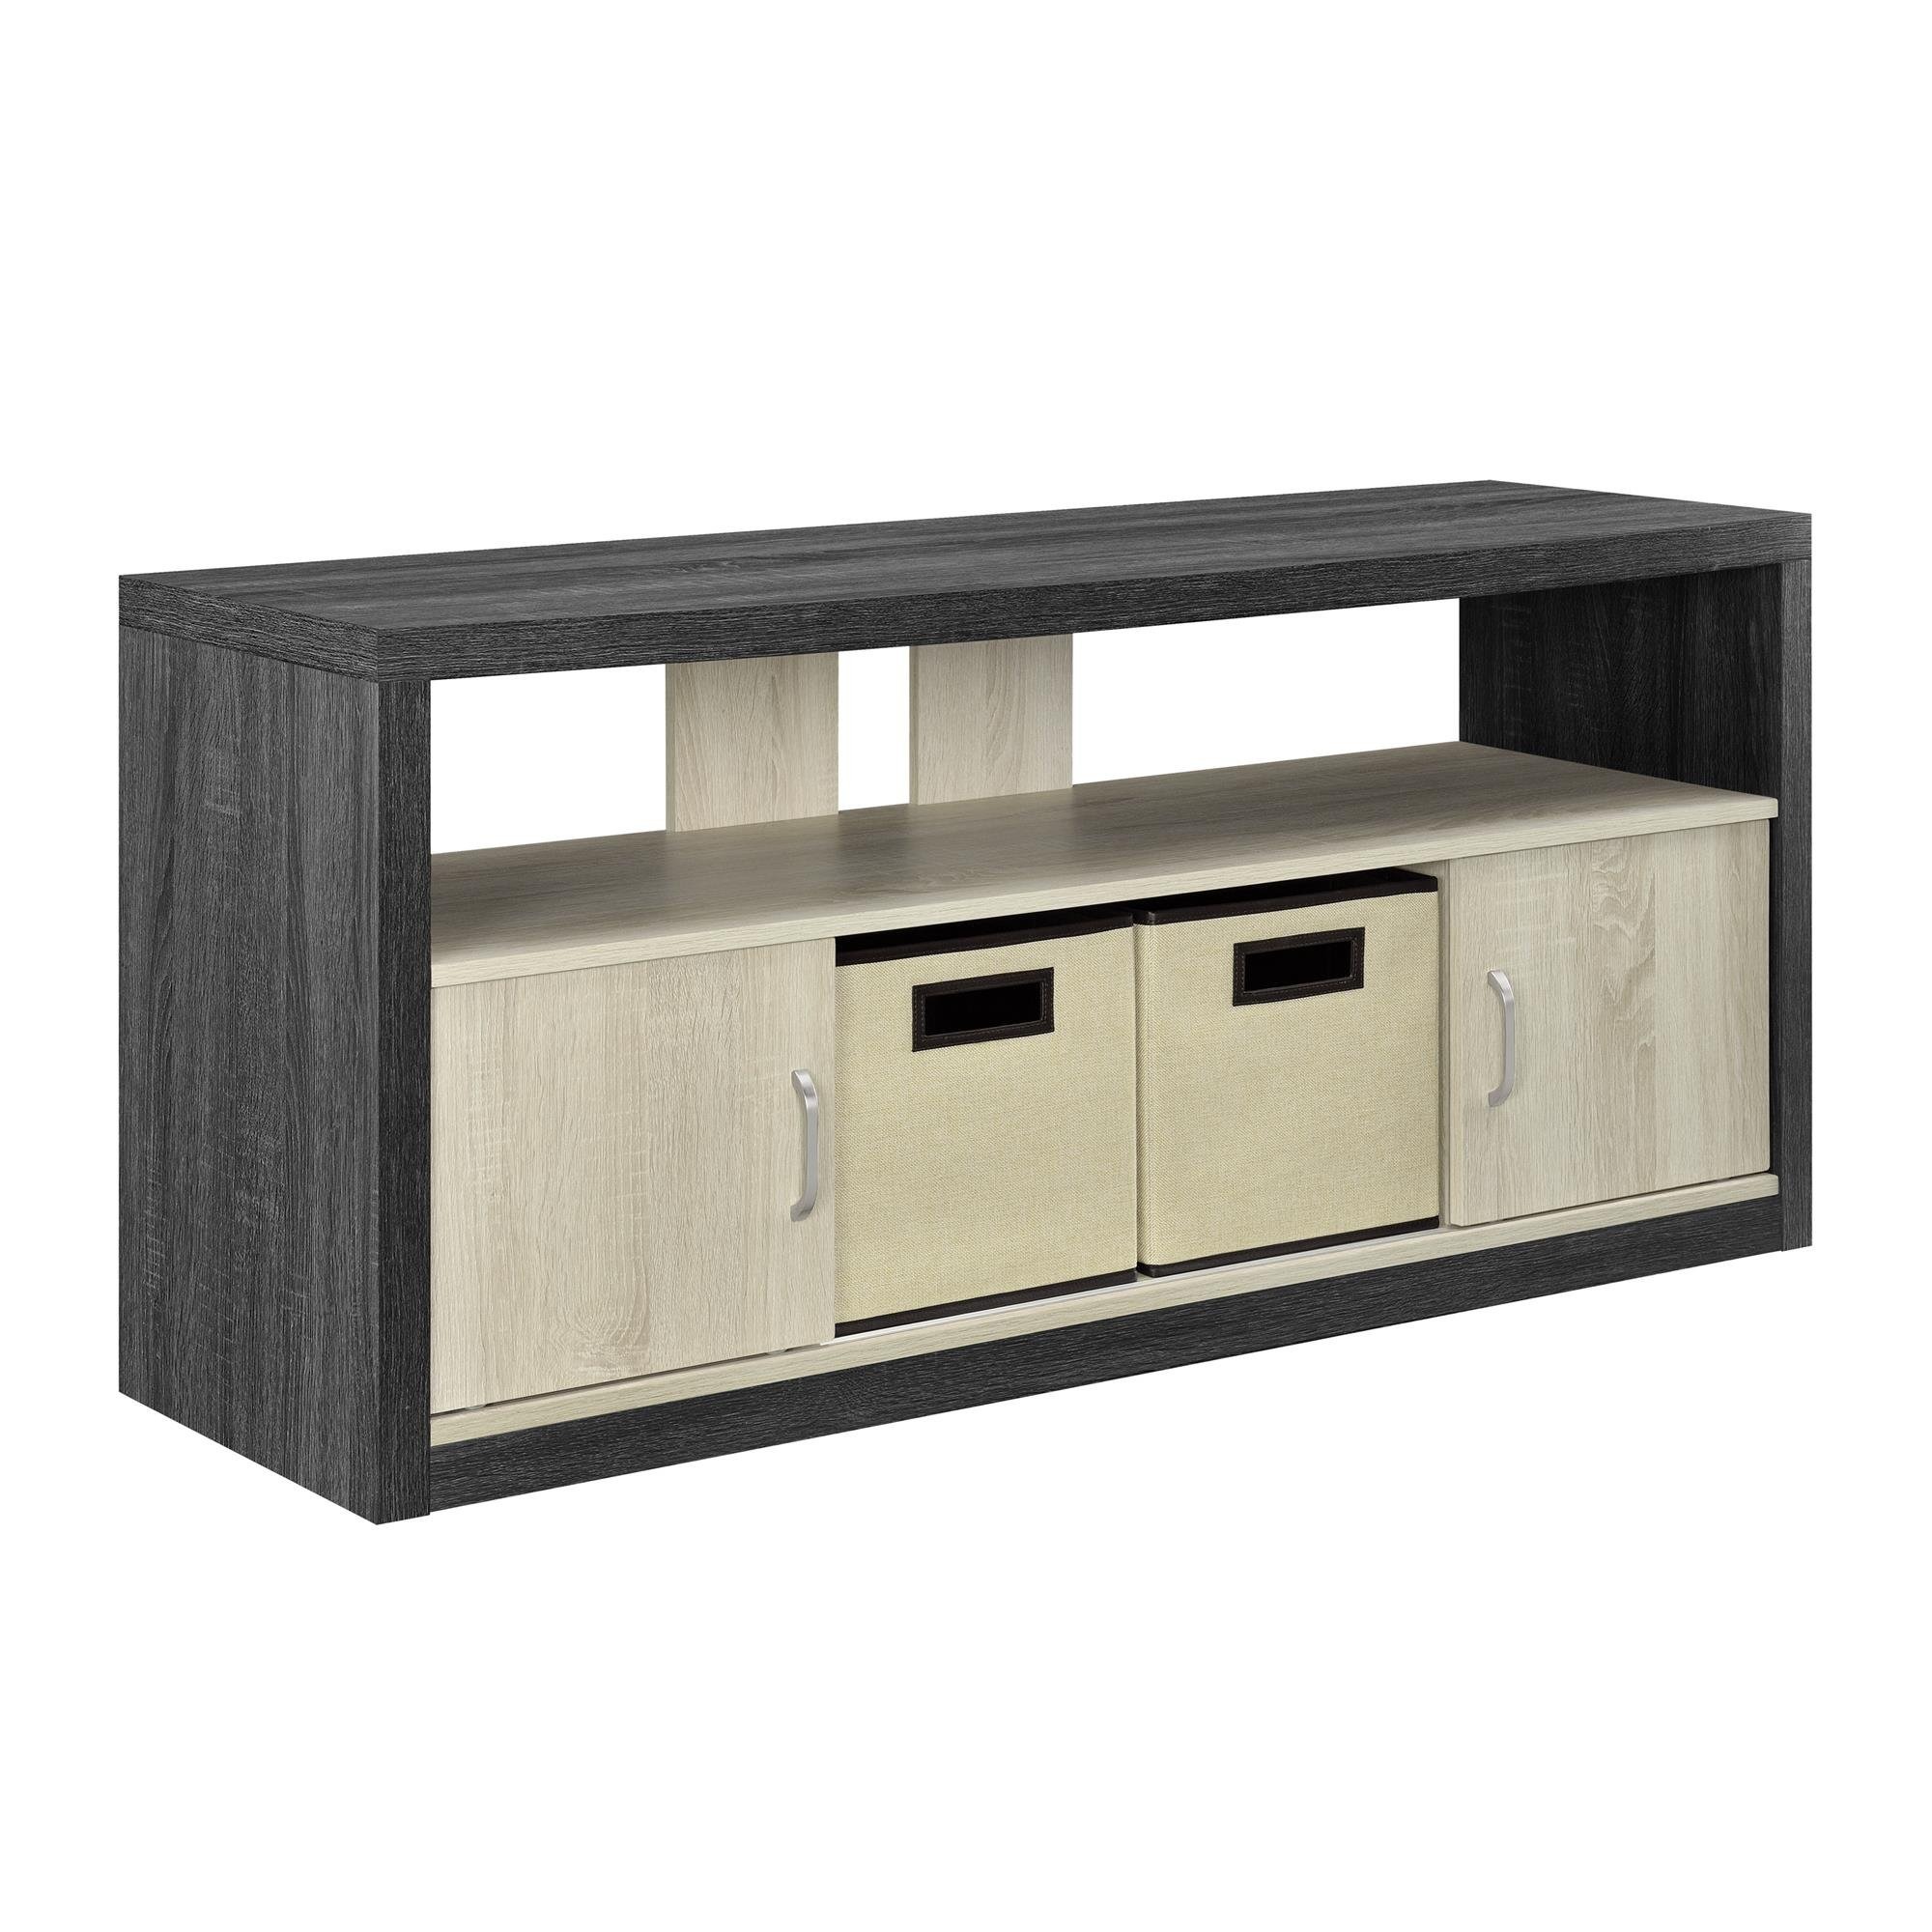 Ameriwood Home Winlen TV Stand for TVs up to 50'' with 2 Fabric Bins, Espresso